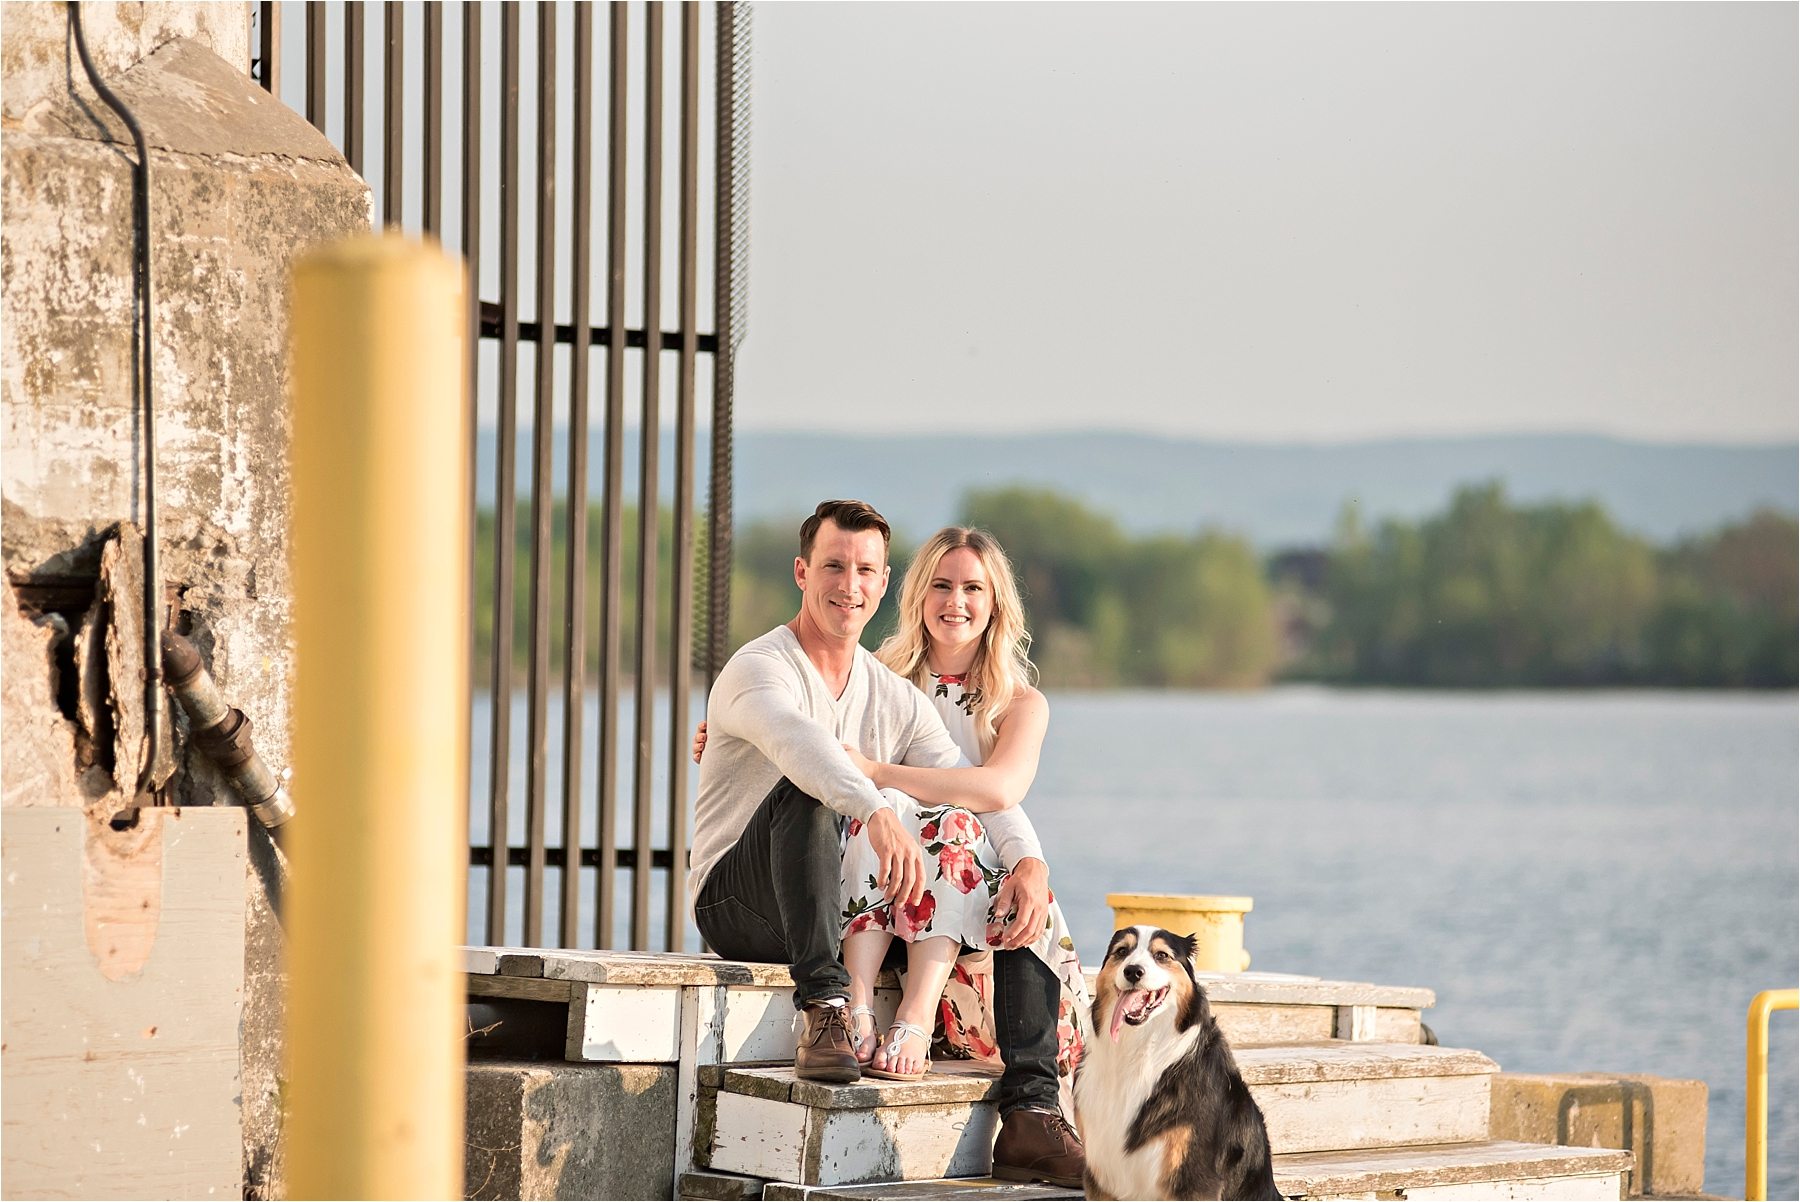 2018,Anthea Michel Photography,Barrie Wedding Photograther,Collingwood Ontario,Collingwood Terminals,Collingwood Wedding Photographer,Collinwood,Engagement,Engagement shoot,Love,New Lowell Wedding Photographer,Ontario,Wedding,Wedding Photographer,